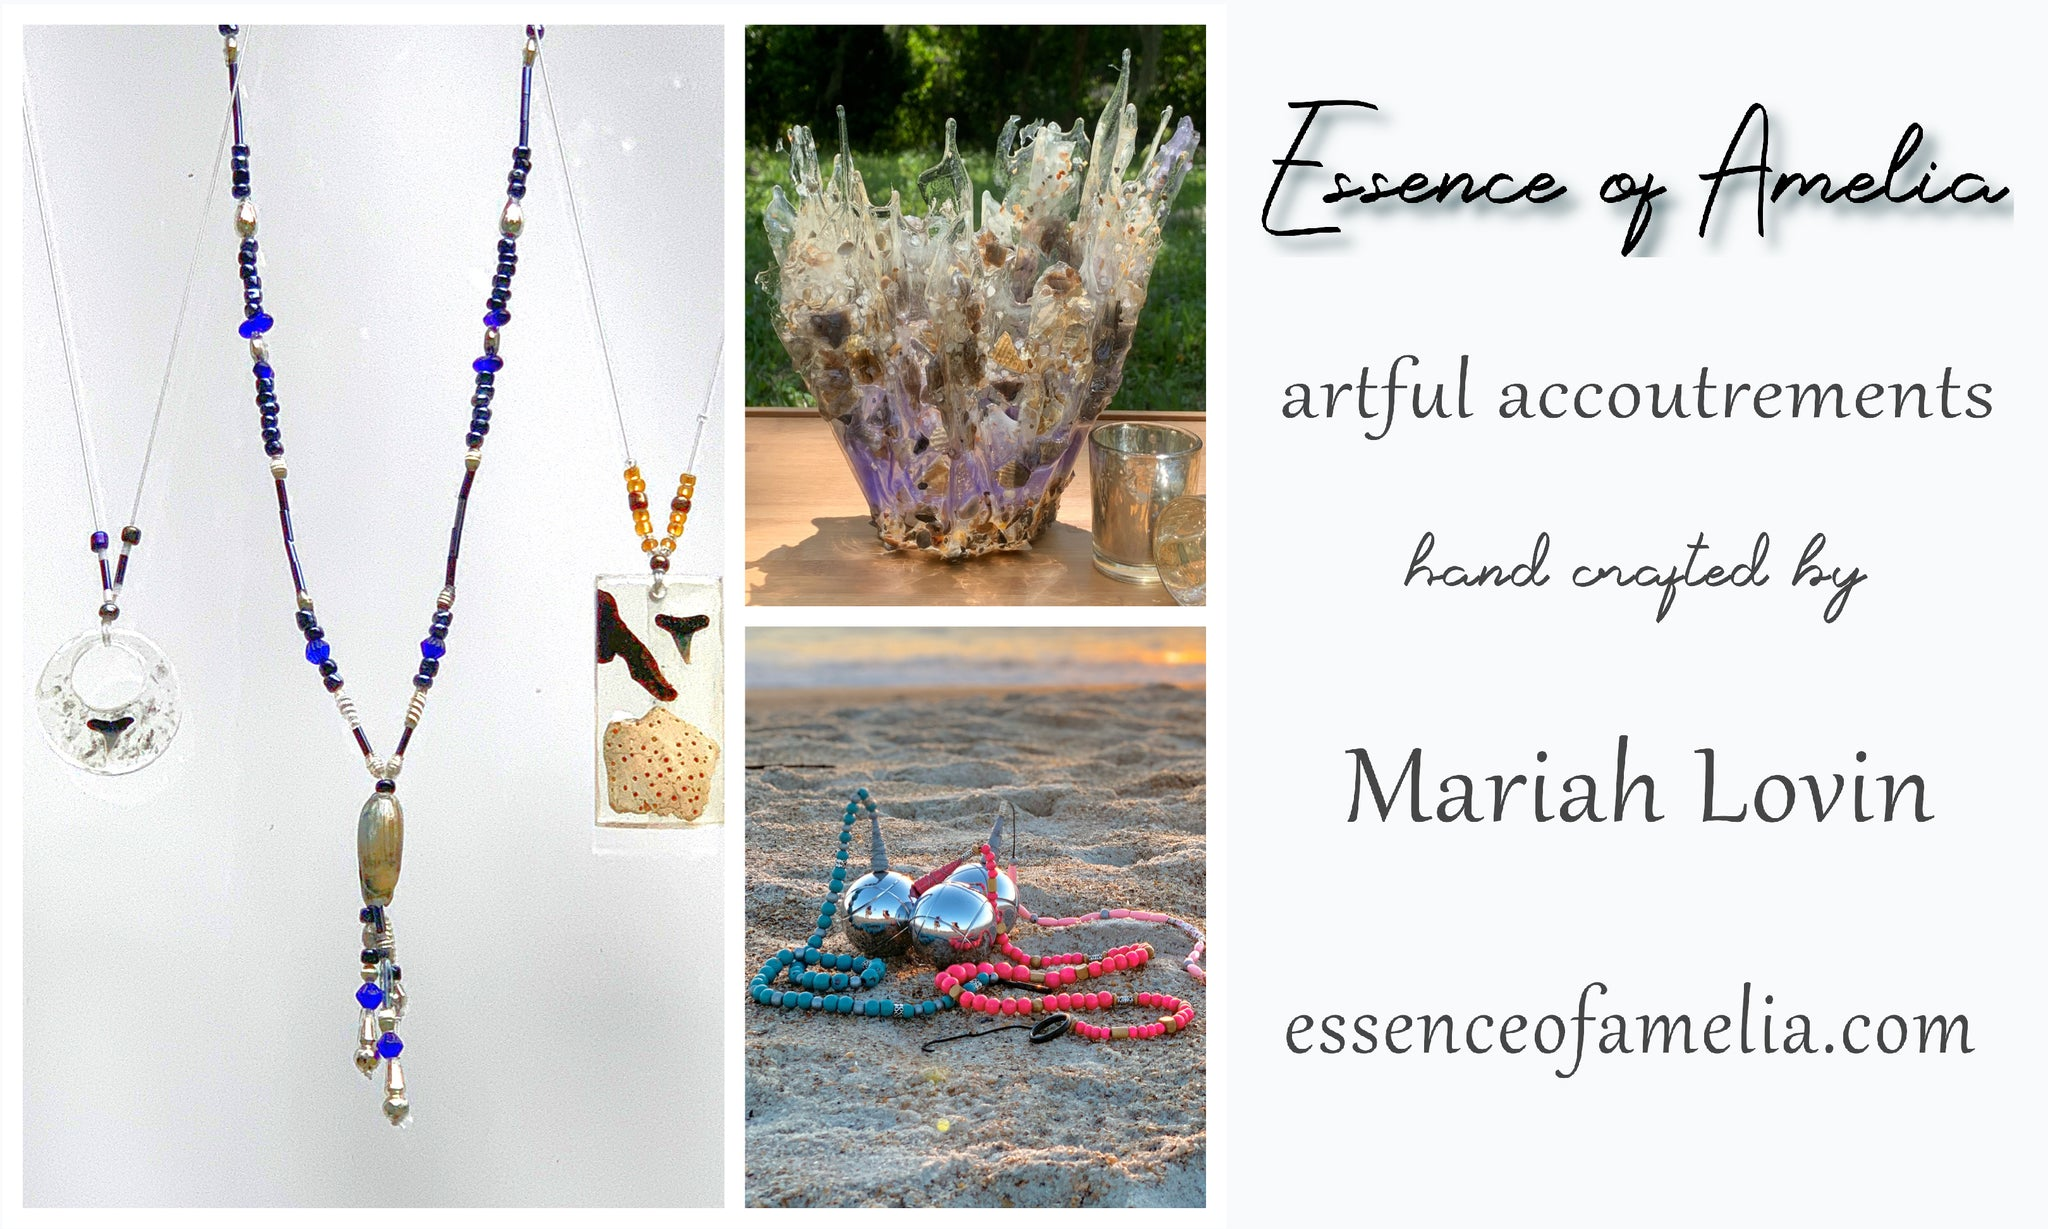 Artistic Accoutrements | Essence of Amelia